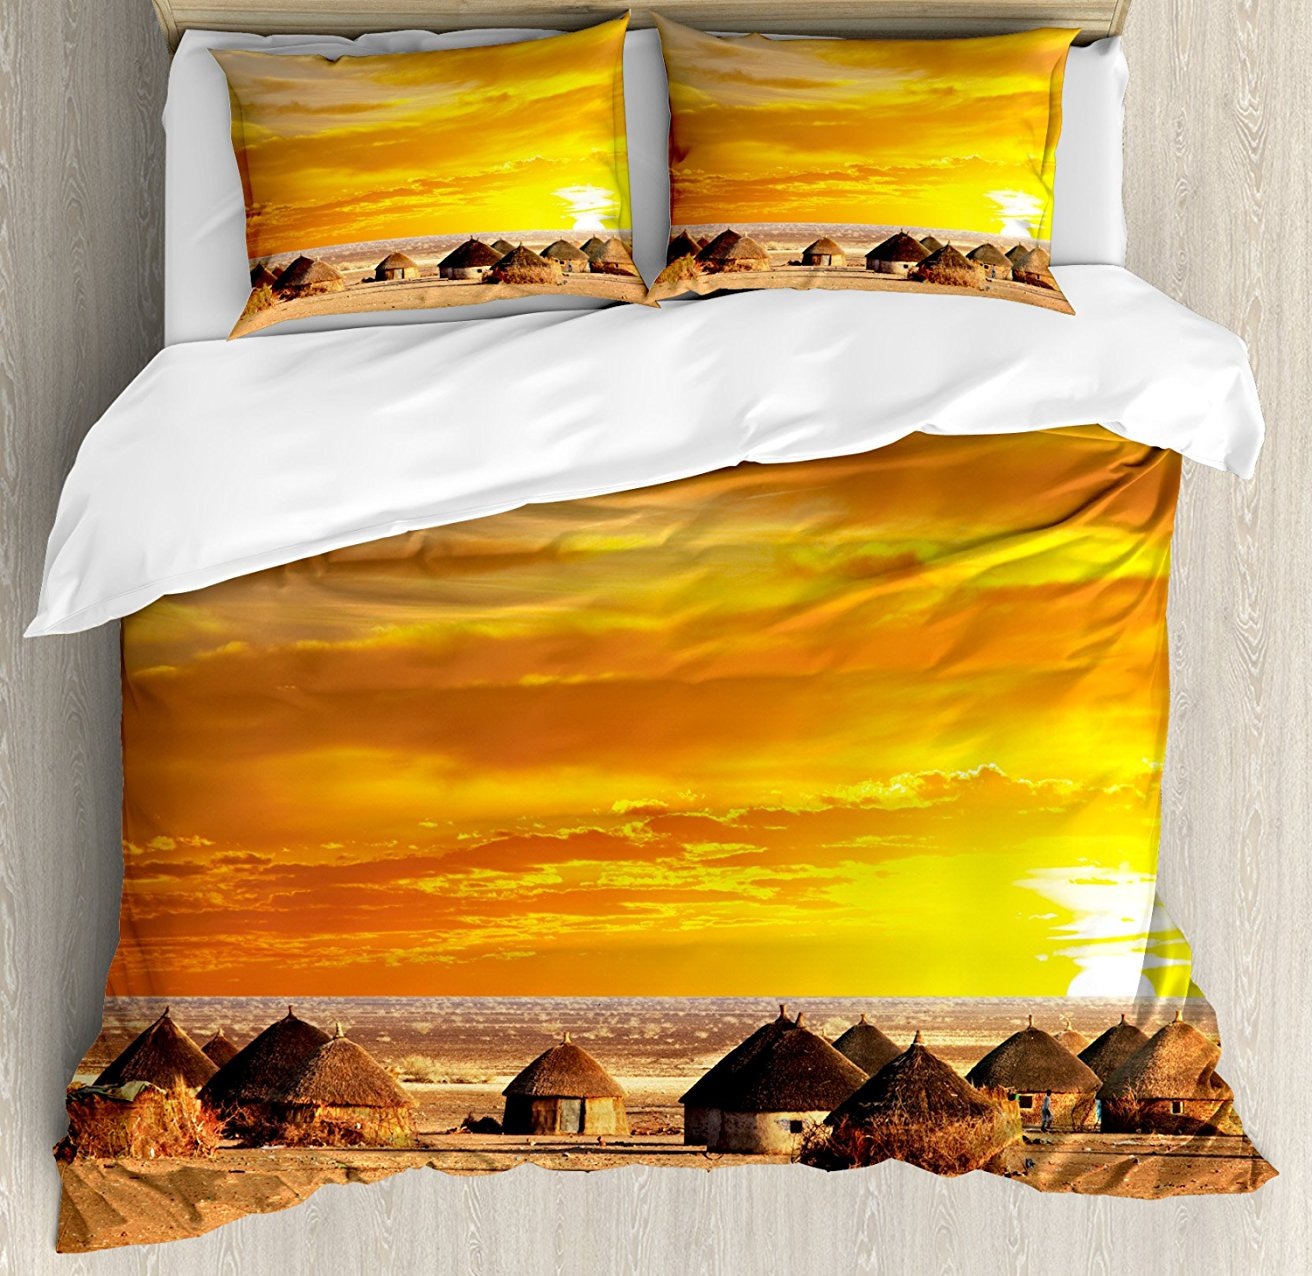 African Duvet Cover Set African Landscape of a Small Town with Horizon Skyline at Dawn Ethiopian Photography 4 Piece Bedding SetAfrican Duvet Cover Set African Landscape of a Small Town with Horizon Skyline at Dawn Ethiopian Photography 4 Piece Bedding Set